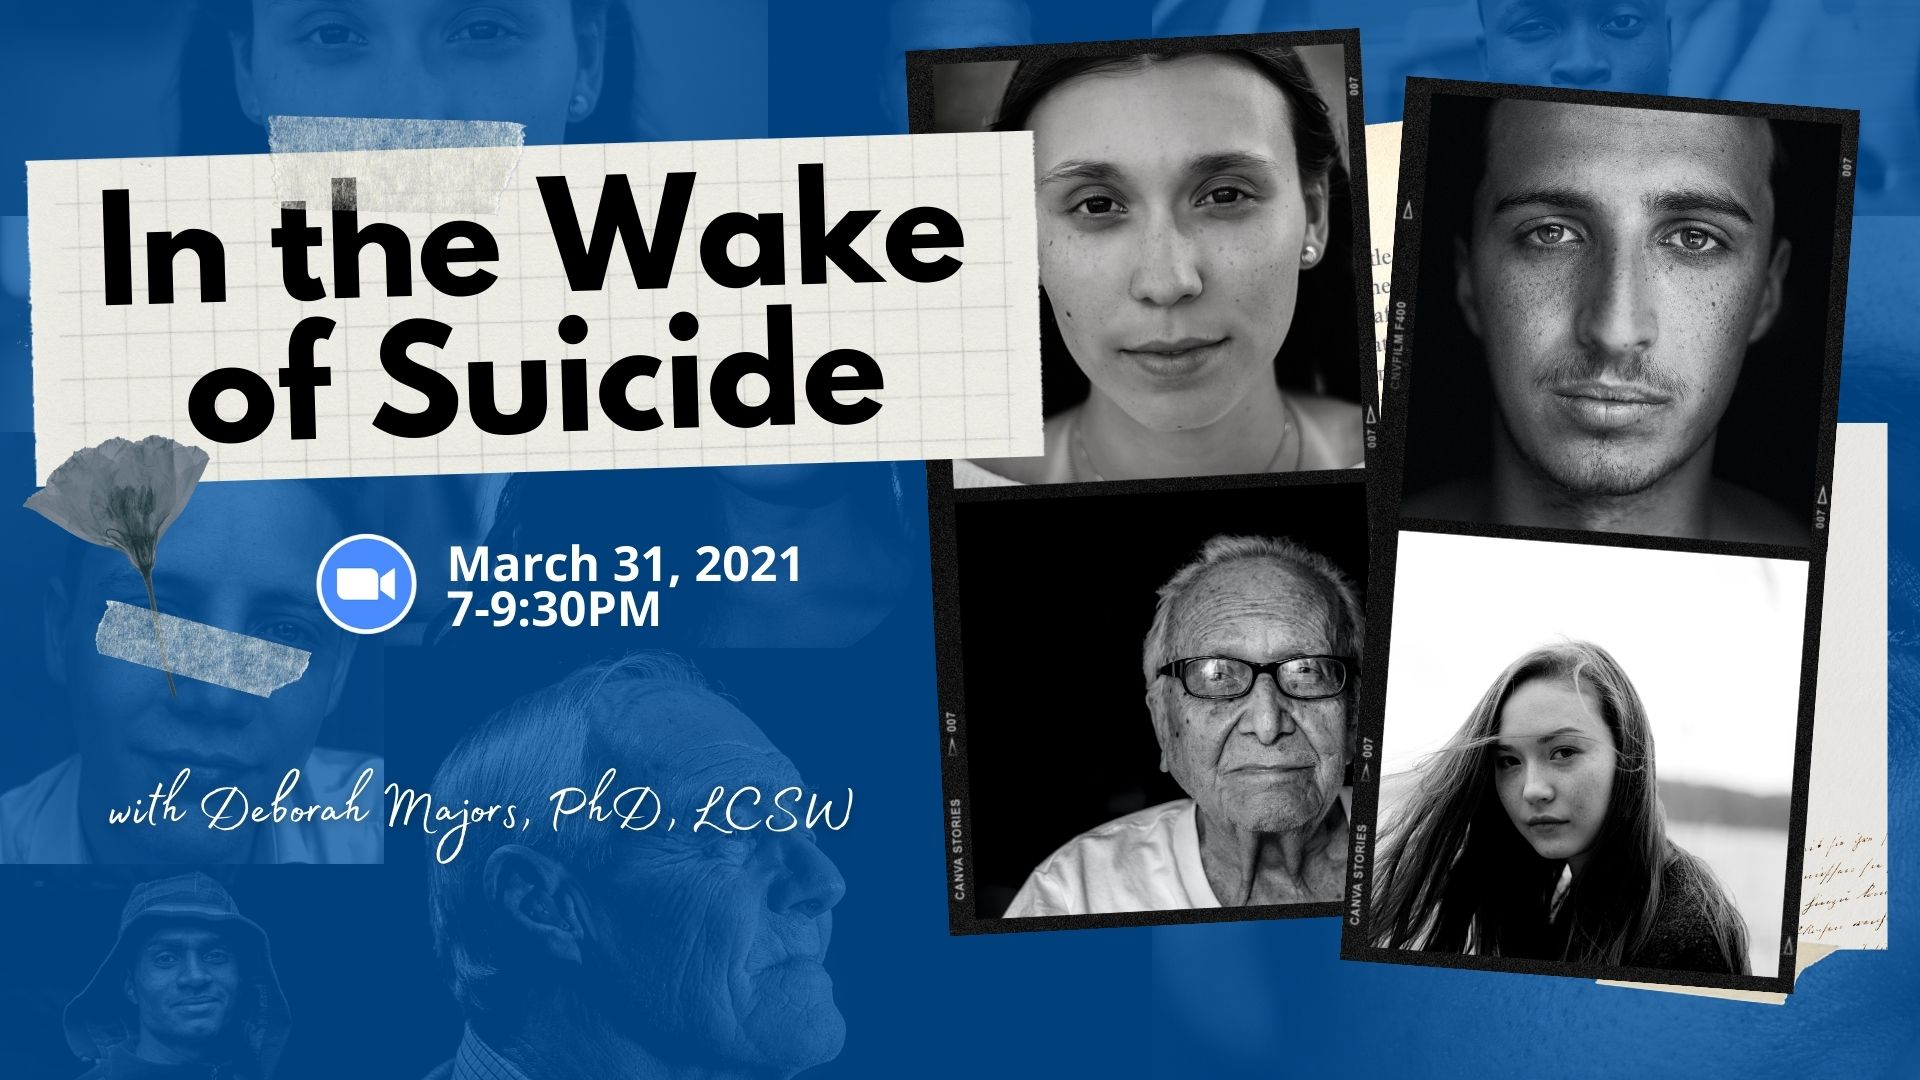 In the Wake of Suicide NAMI Webinar